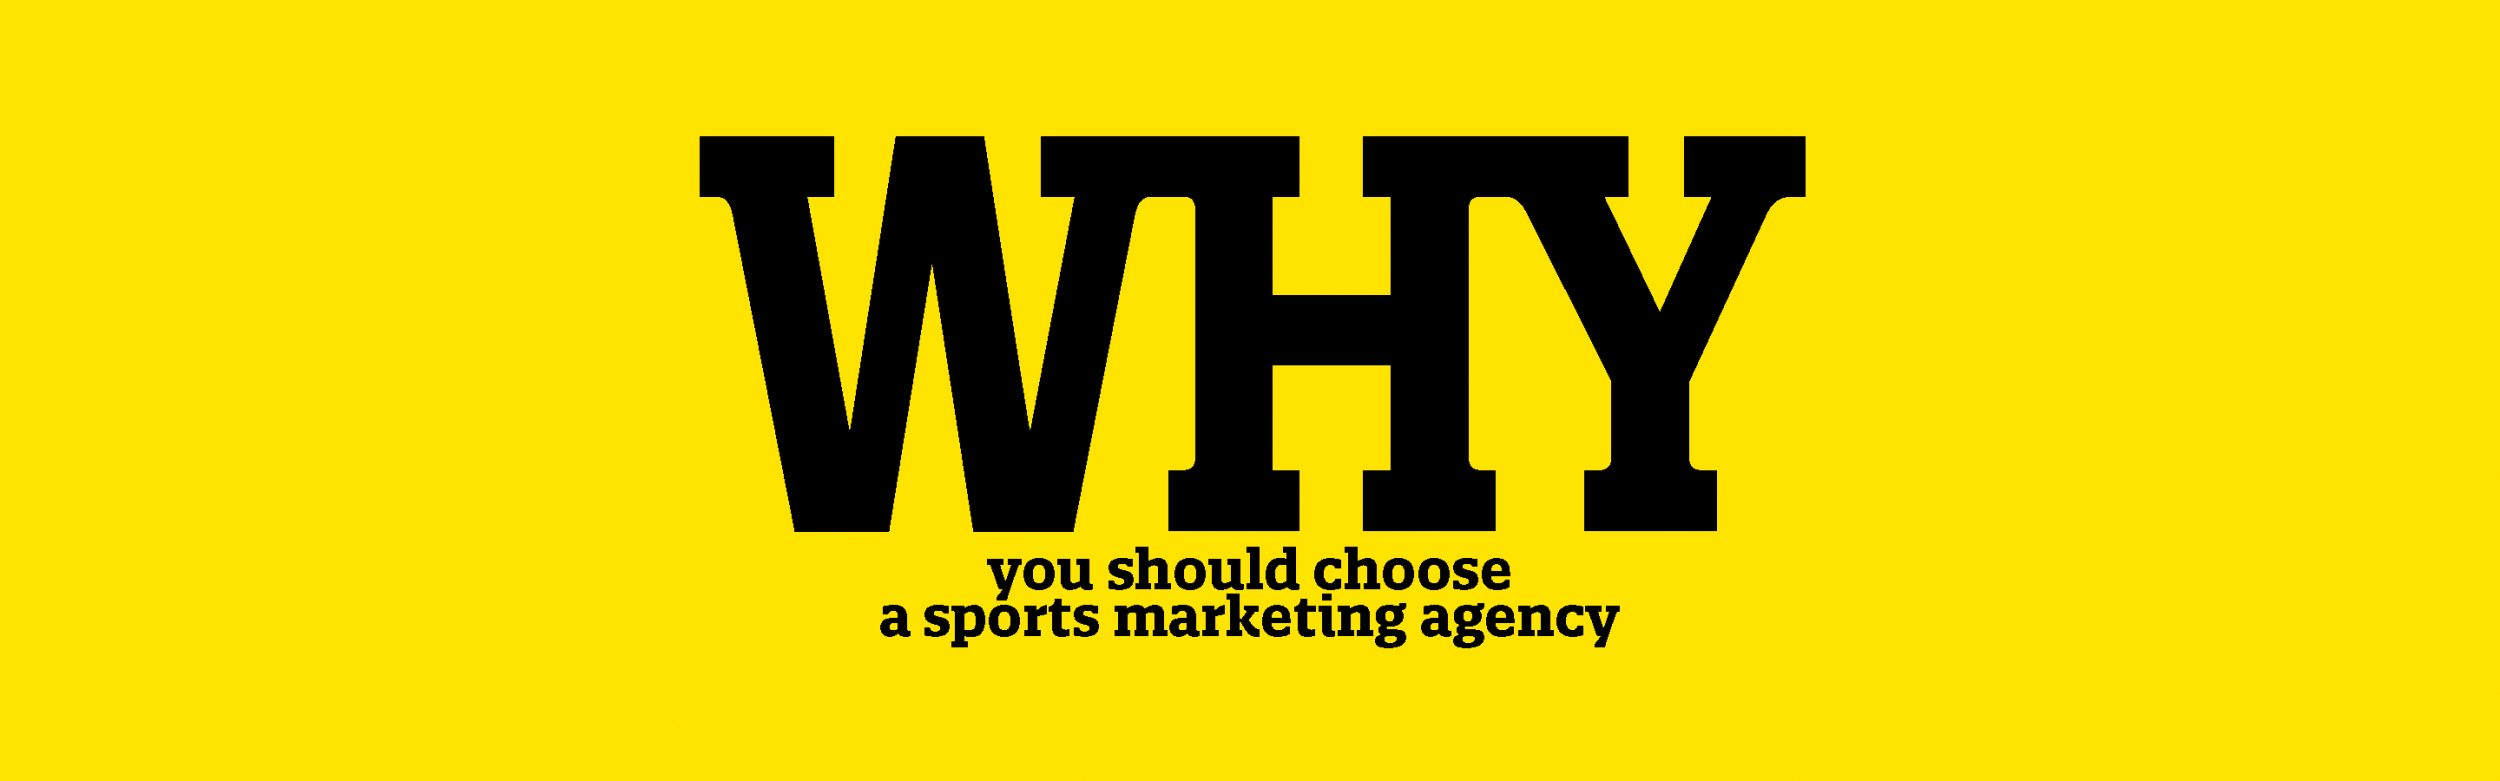 sports marketing agency why